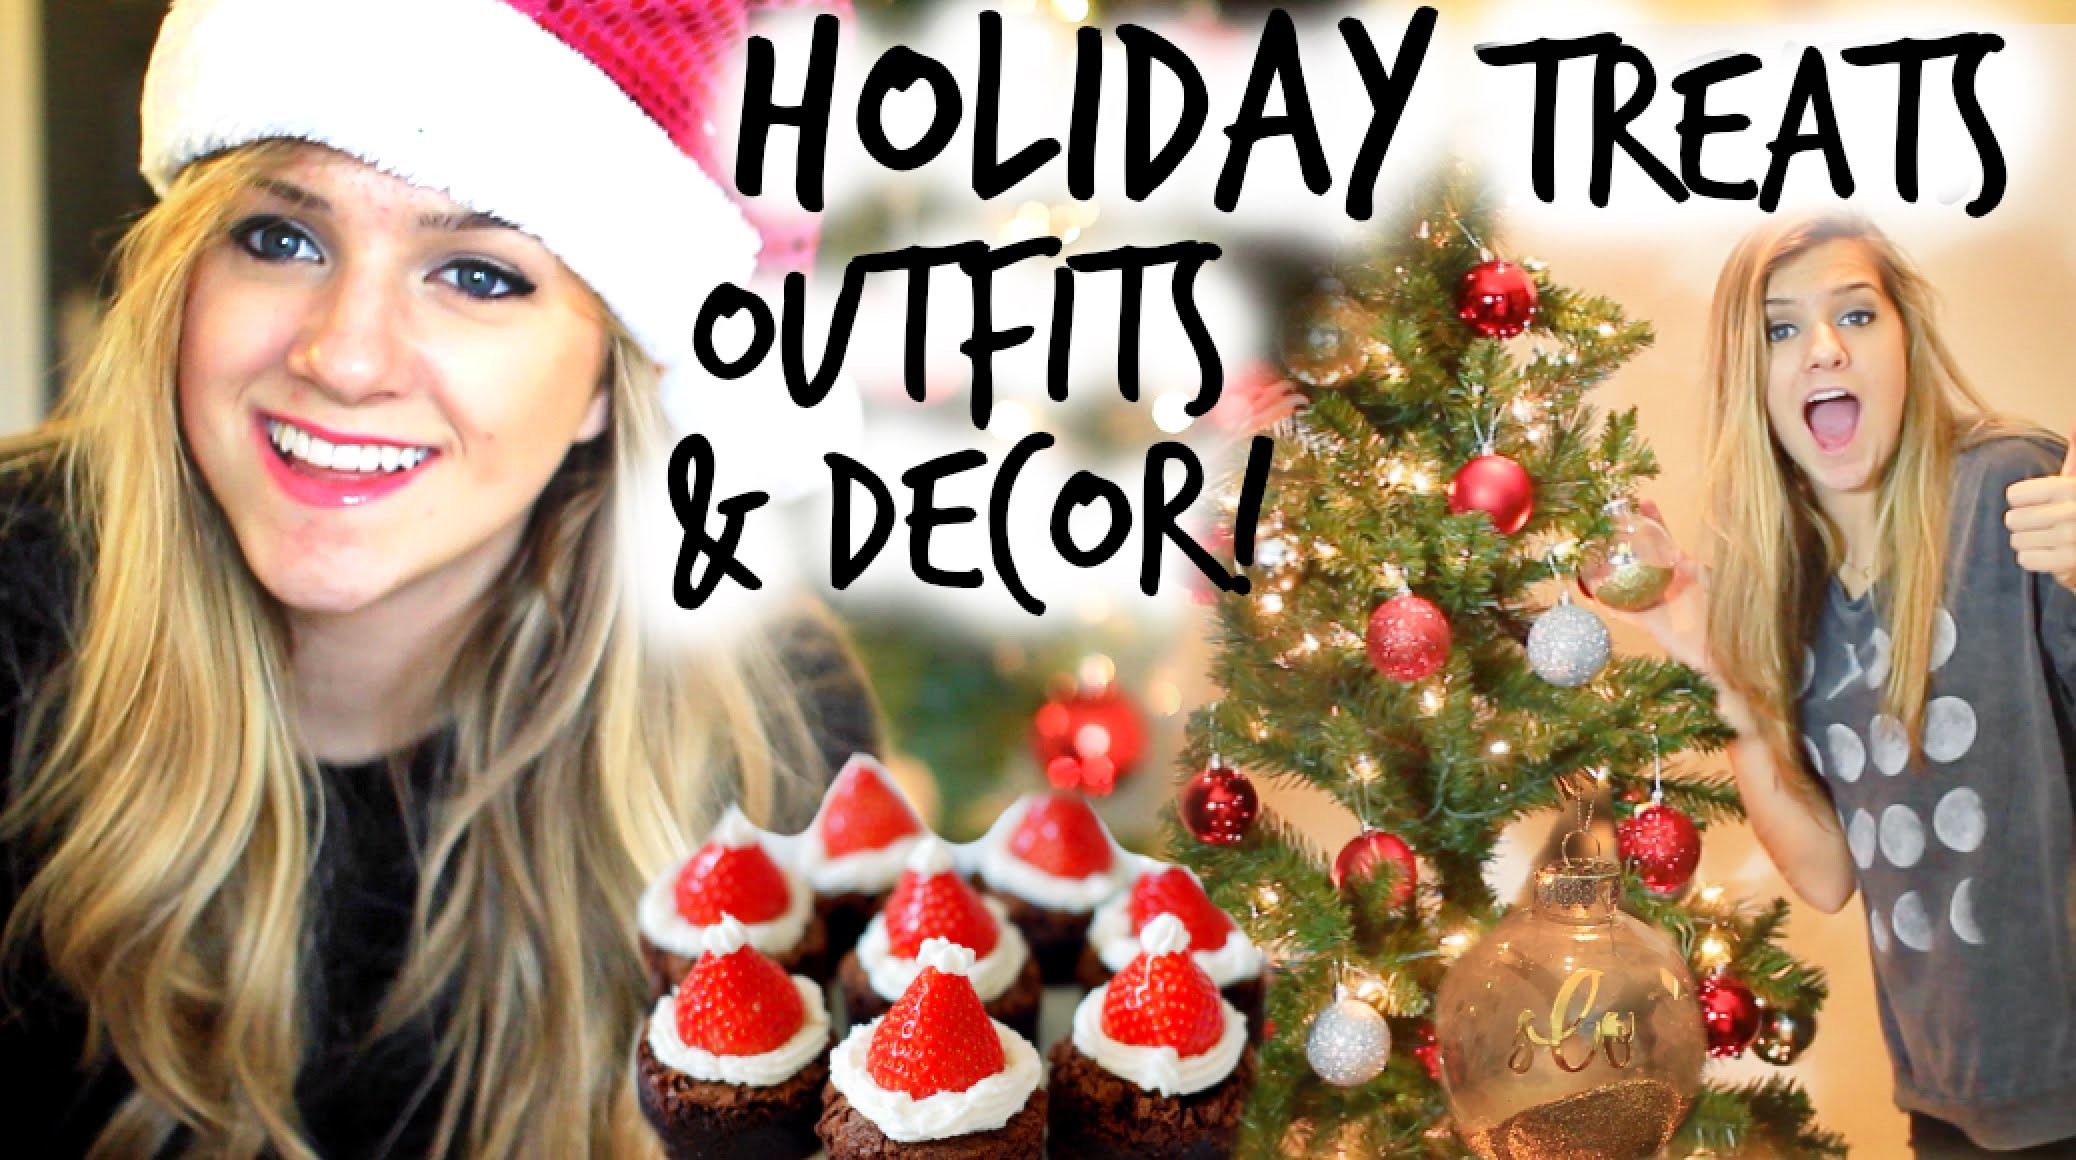 Holiday Party Decor, Treats & Outfit Ideas for Winter!